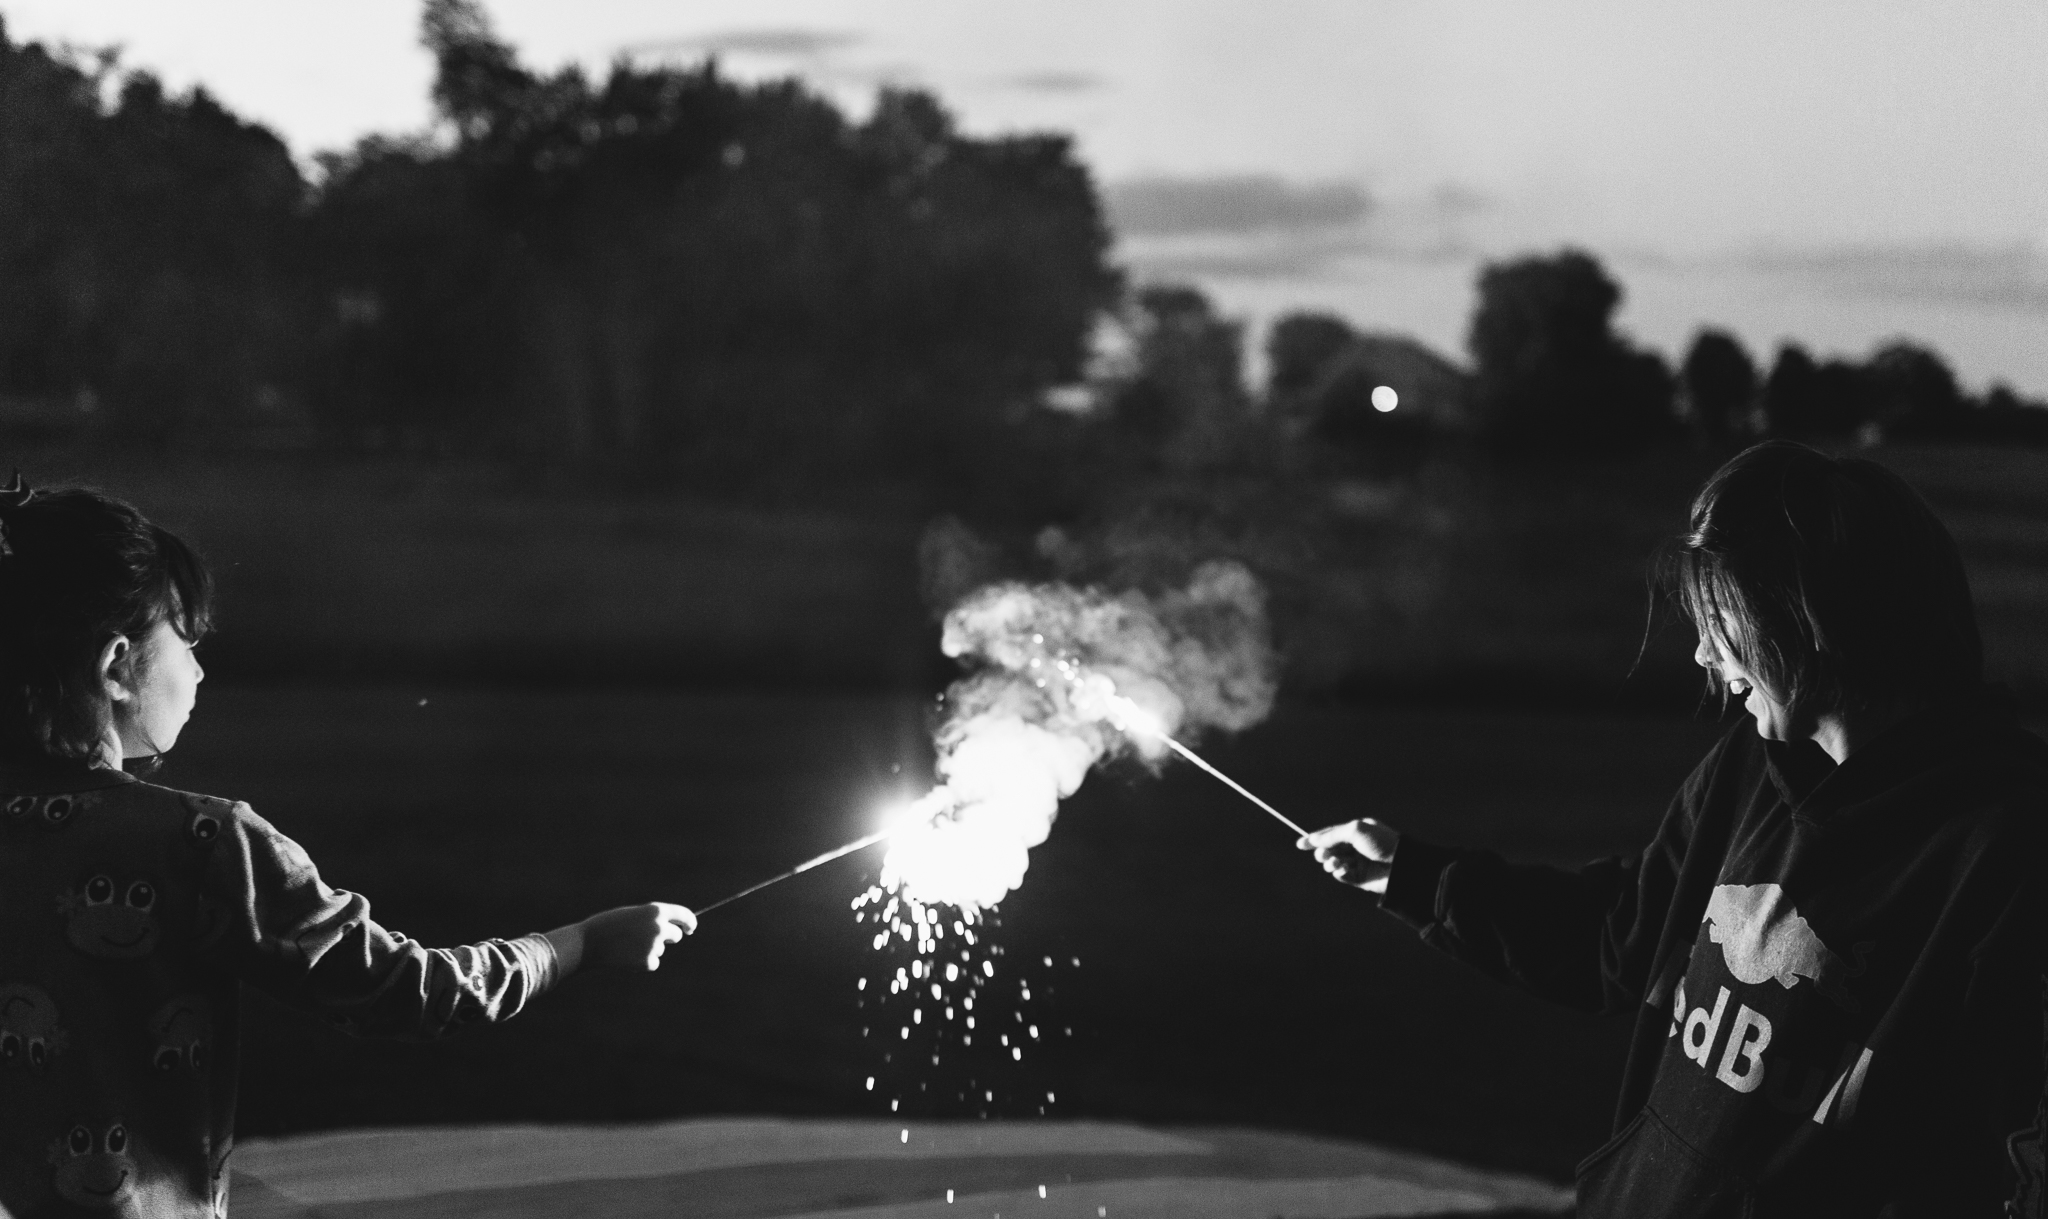 4th-july-fireworks-sparklers-documentary-family-party-photography-3.jpg